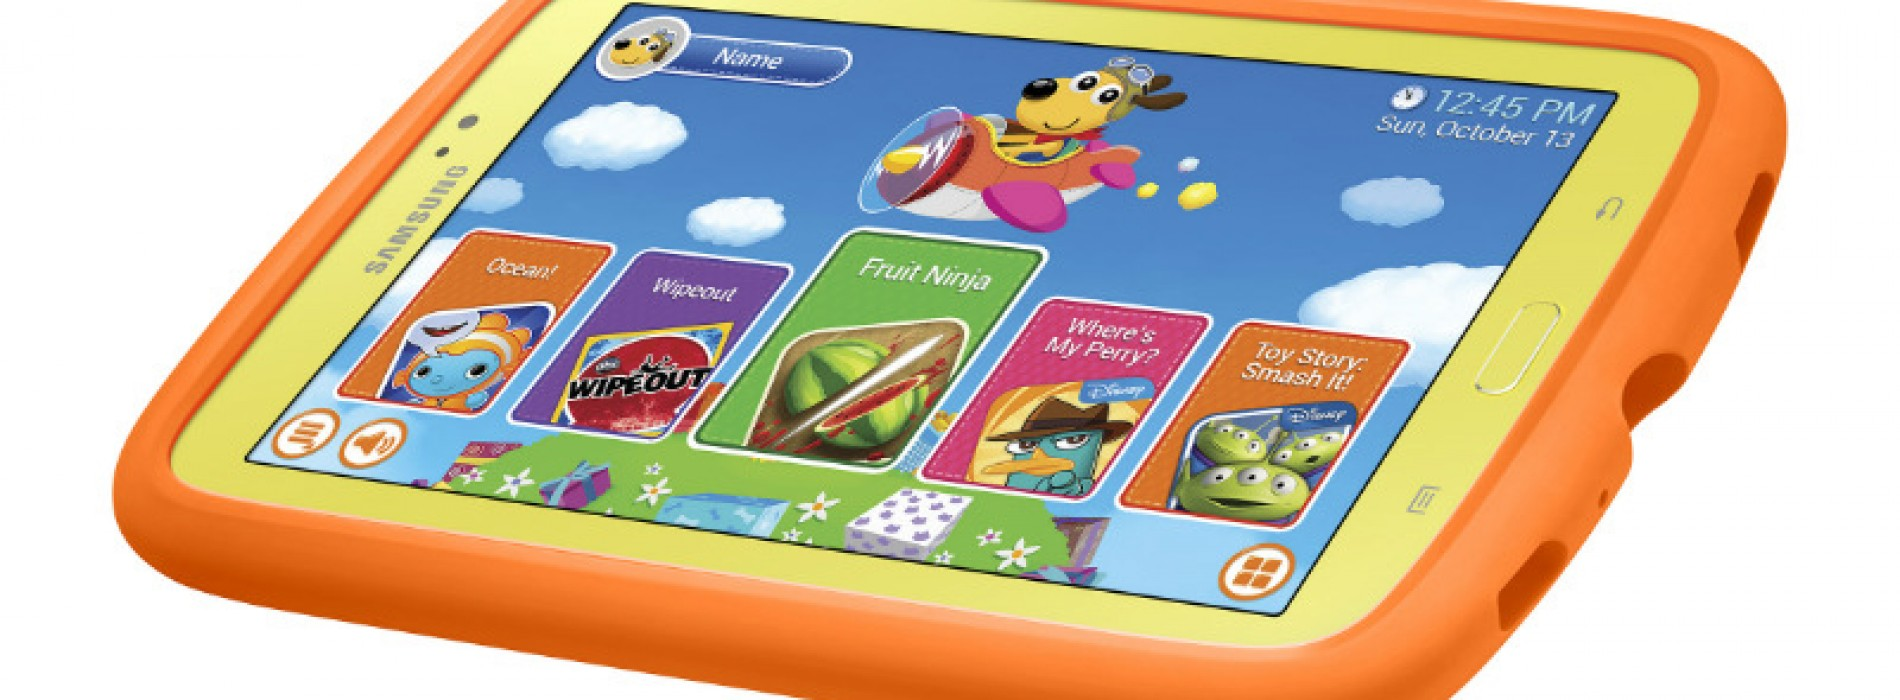 Samsung Galaxy Tab 3 Kids due in U.S. starting November 10